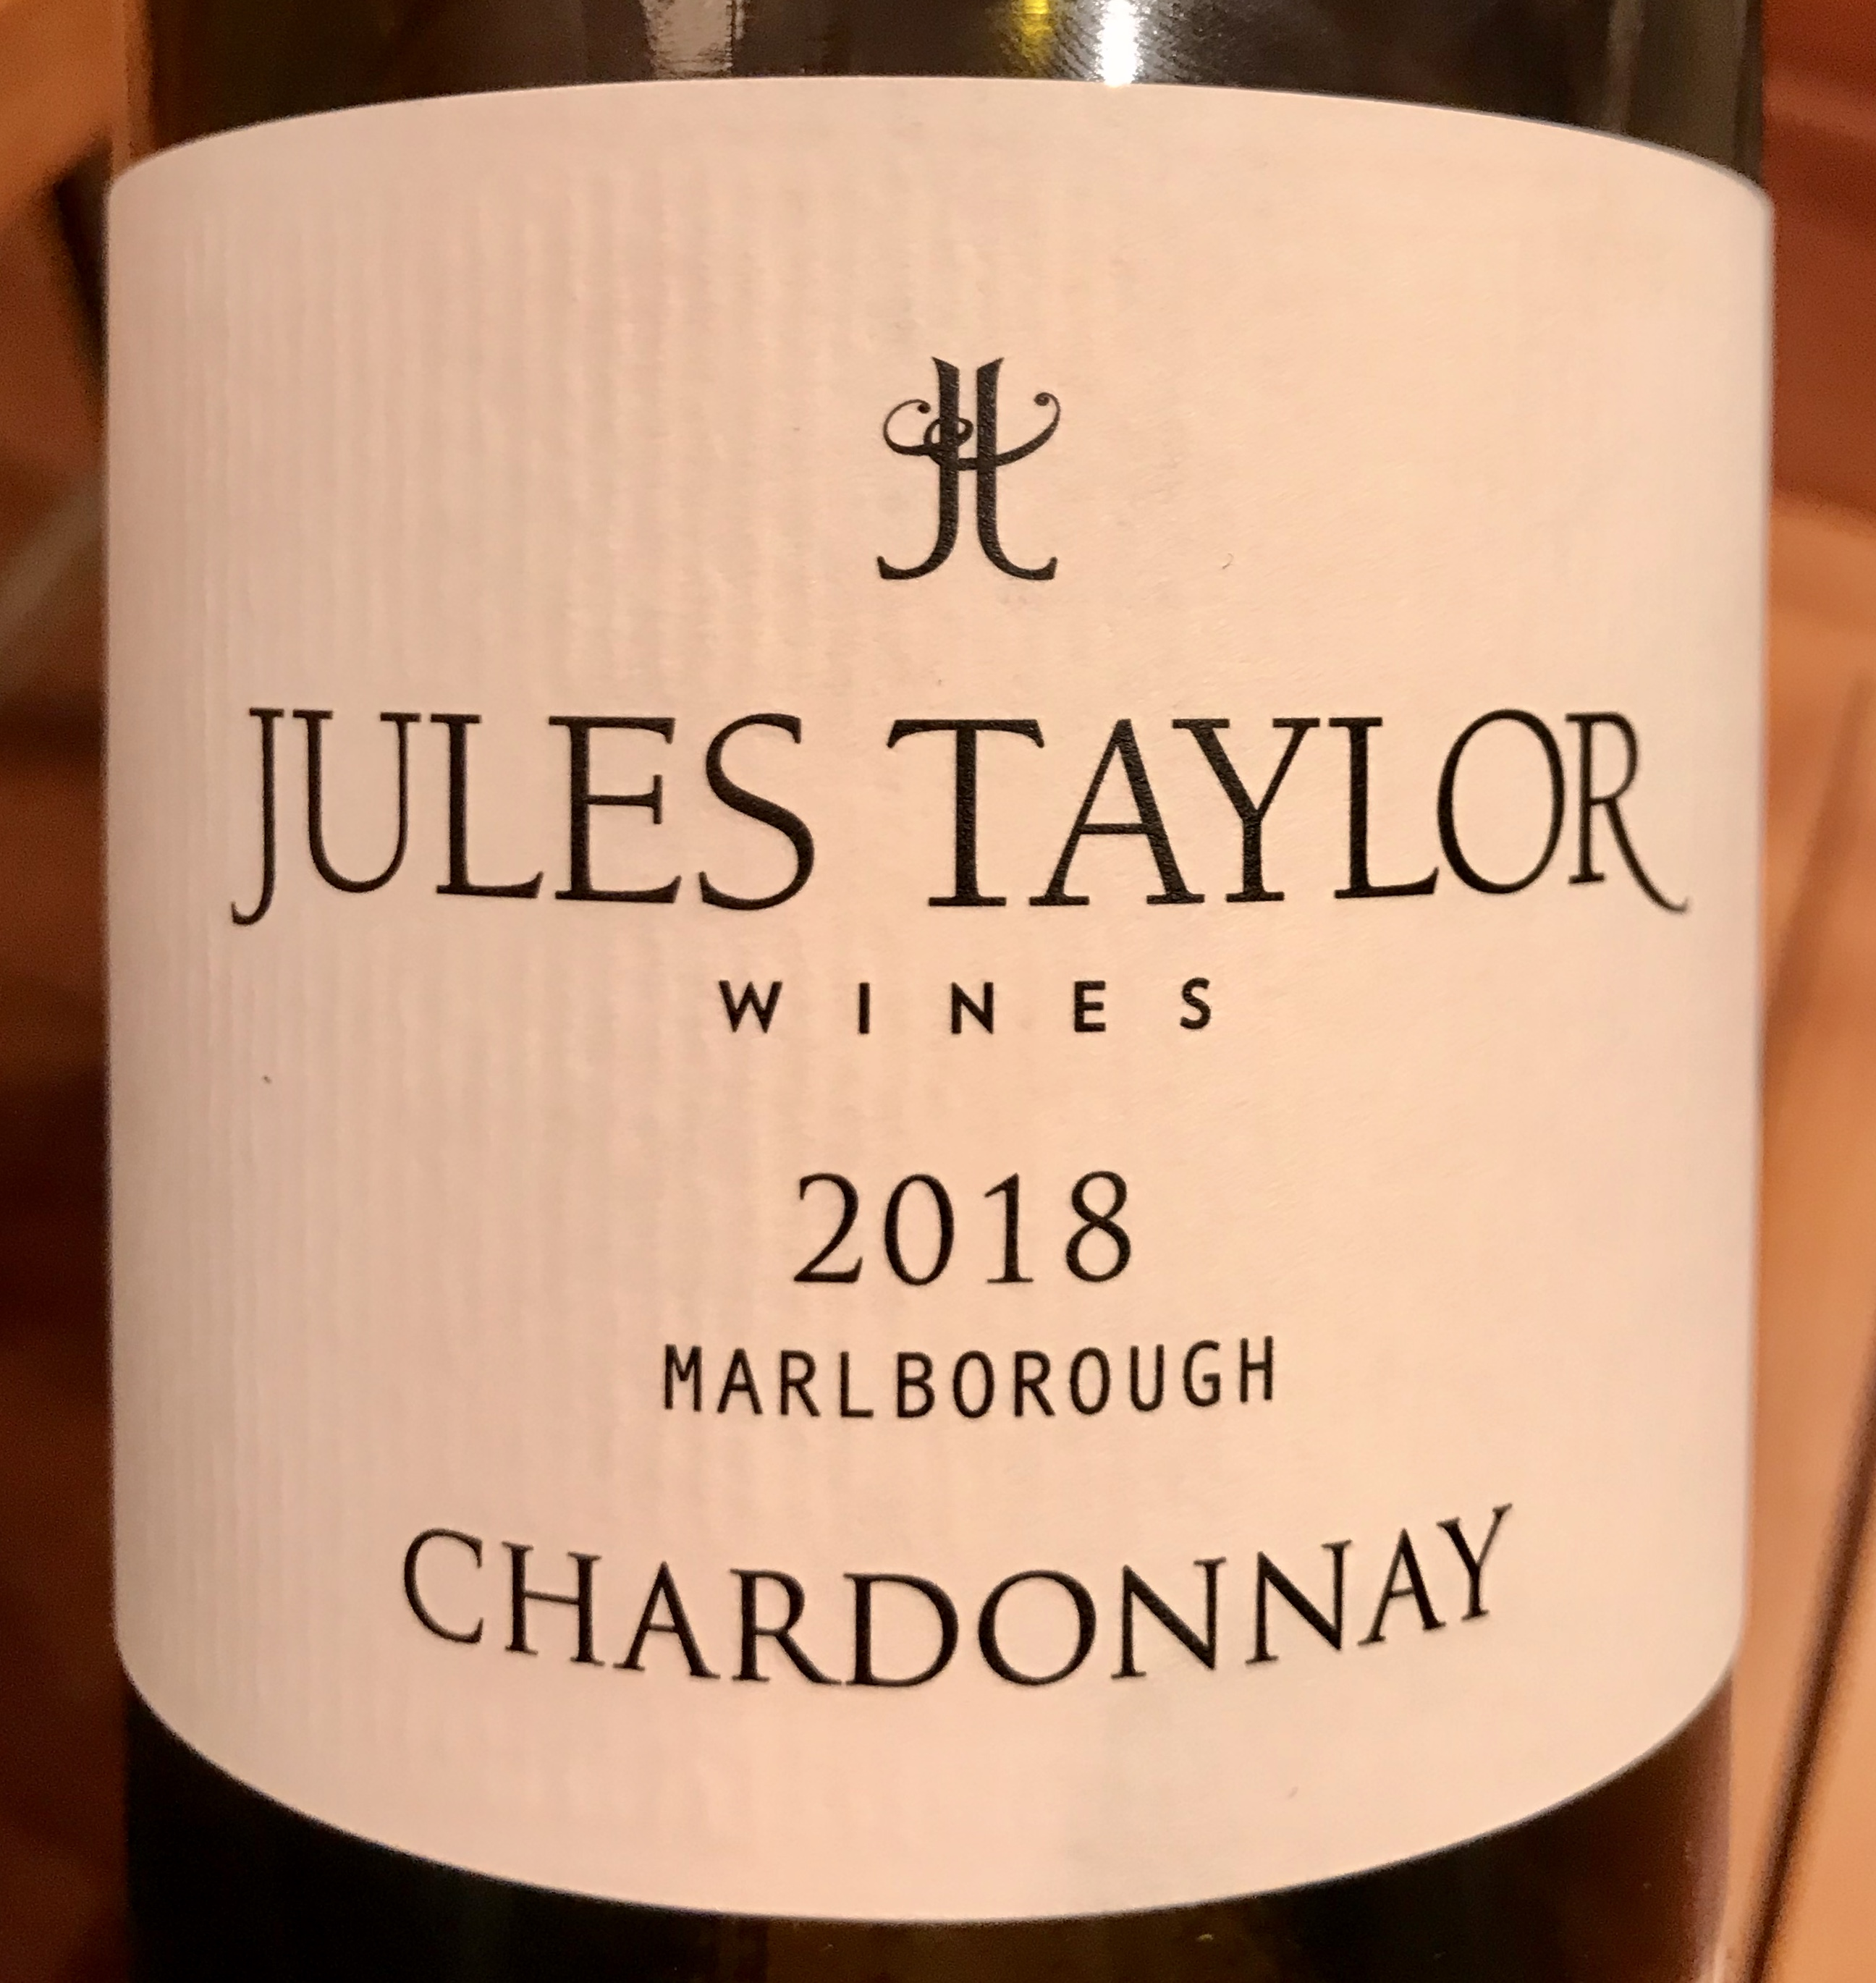 Jules Taylor Marlborough Chardonnay 2018